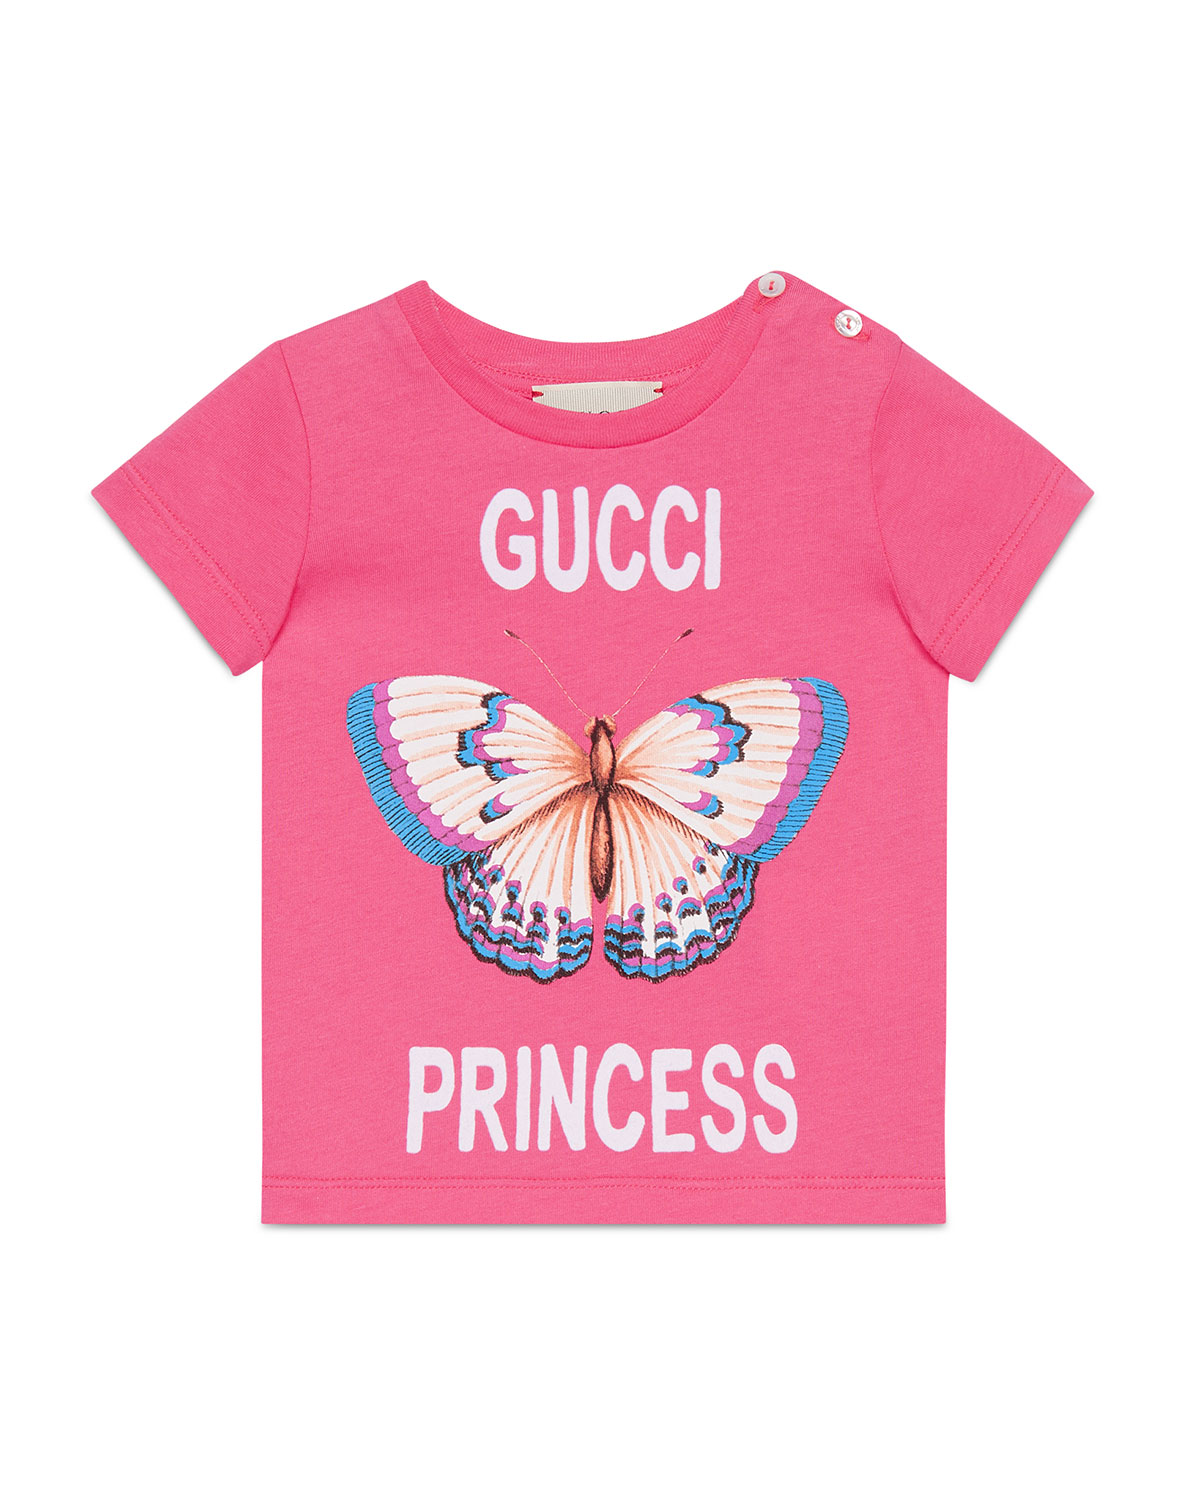 aa91c578 Gucci Gucci Princess Butterfly T-Shirt, Size 6-36 Months | Neiman Marcus